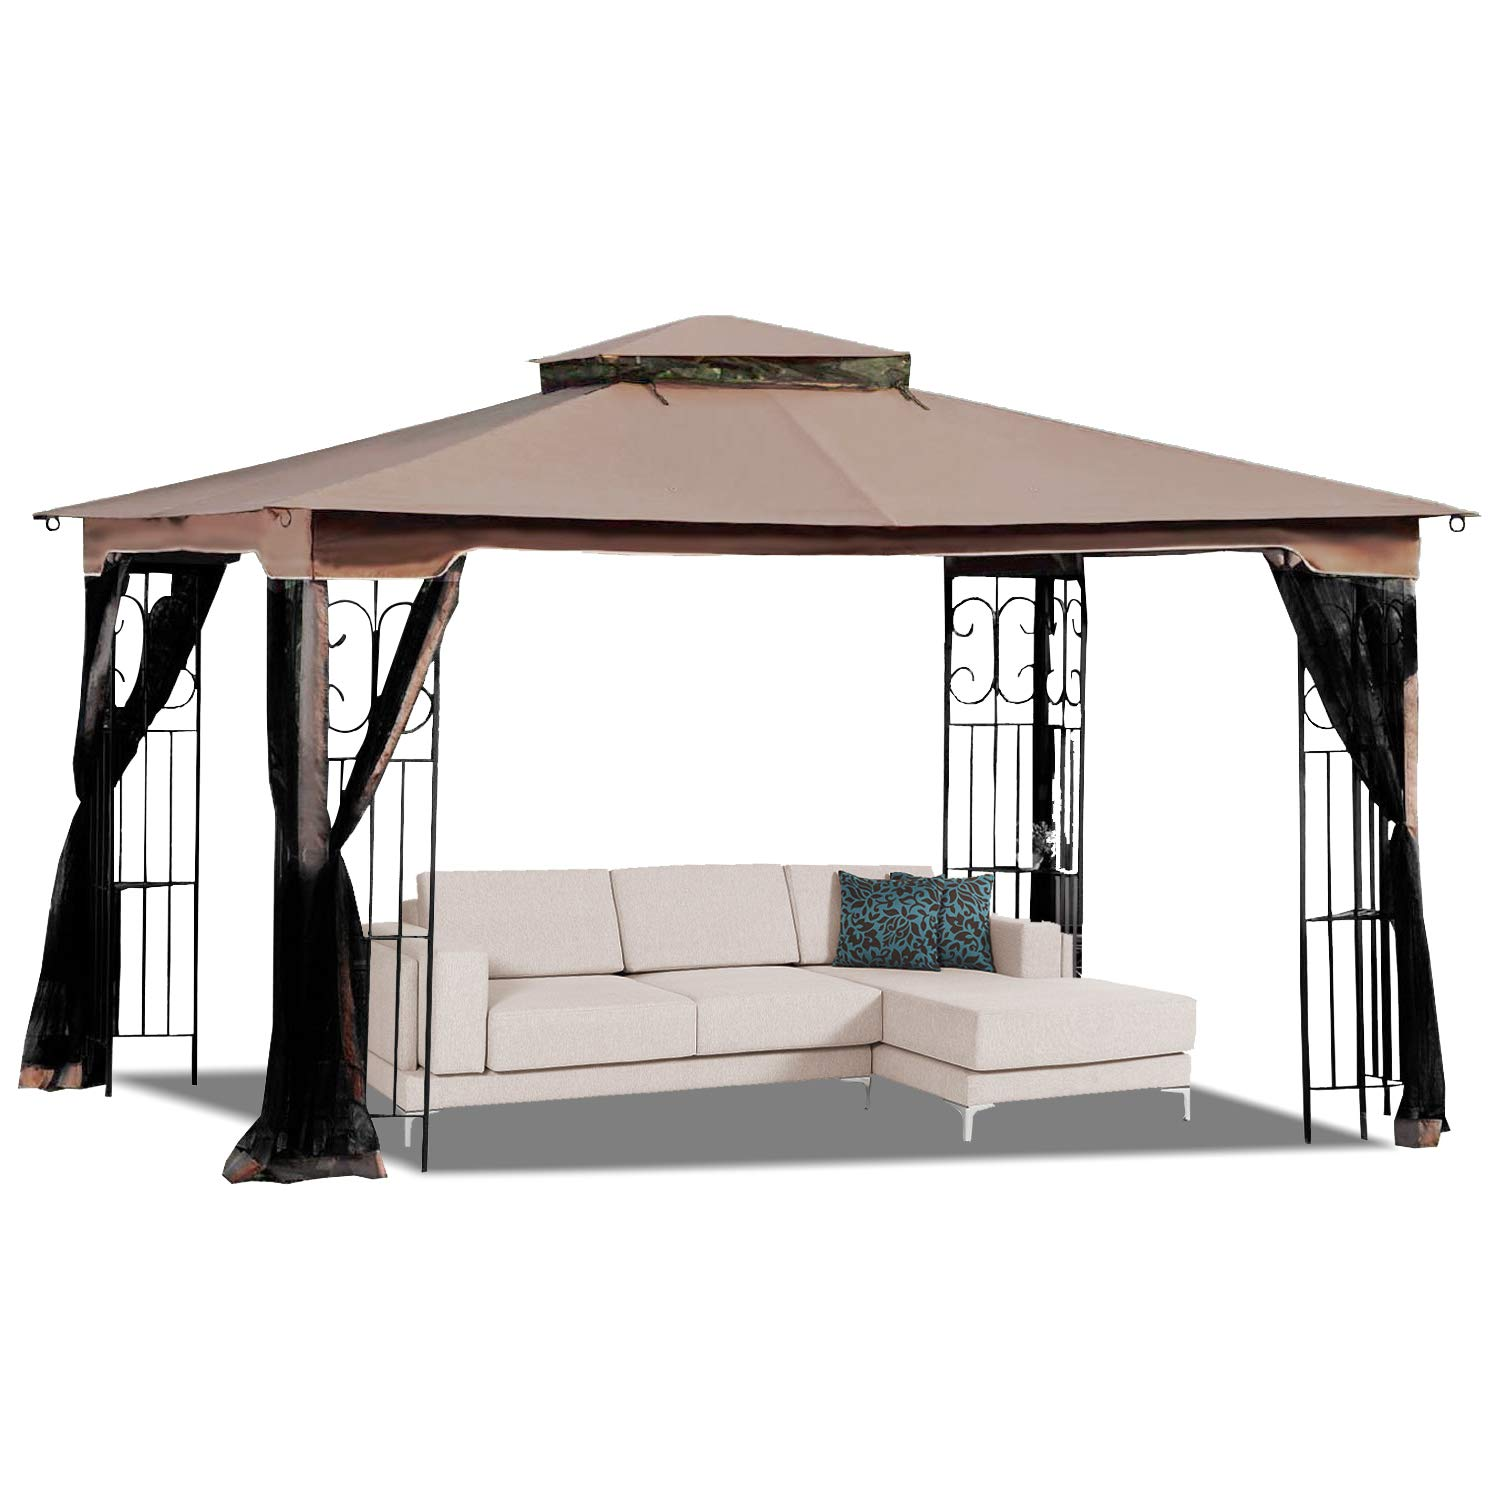 MasterCanopy 10' x 12' Gazebo Replacement Canopy Roof for Model GZ798PST-E(Only Top) by MasterCanopy